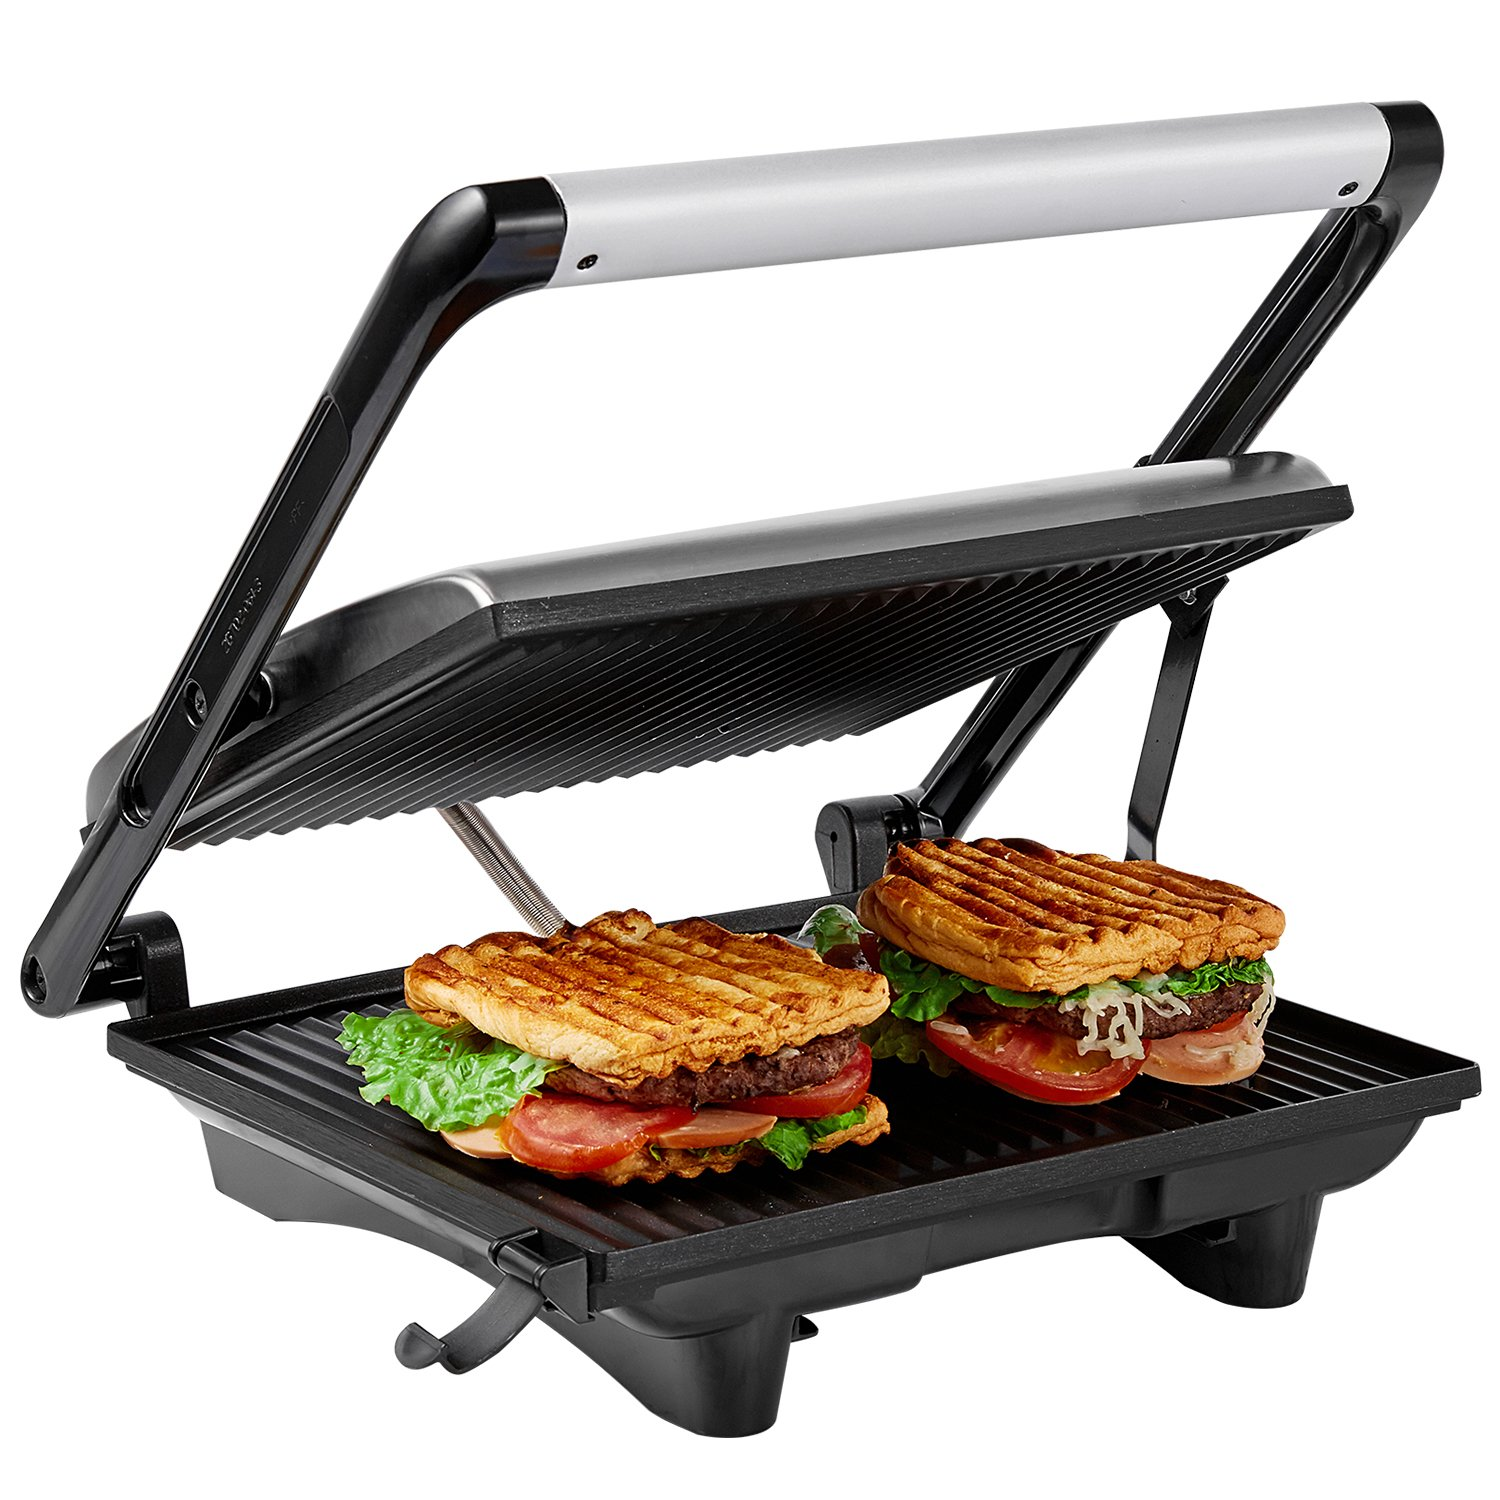 aicok panini press grill panini maker sandwich maker. Black Bedroom Furniture Sets. Home Design Ideas